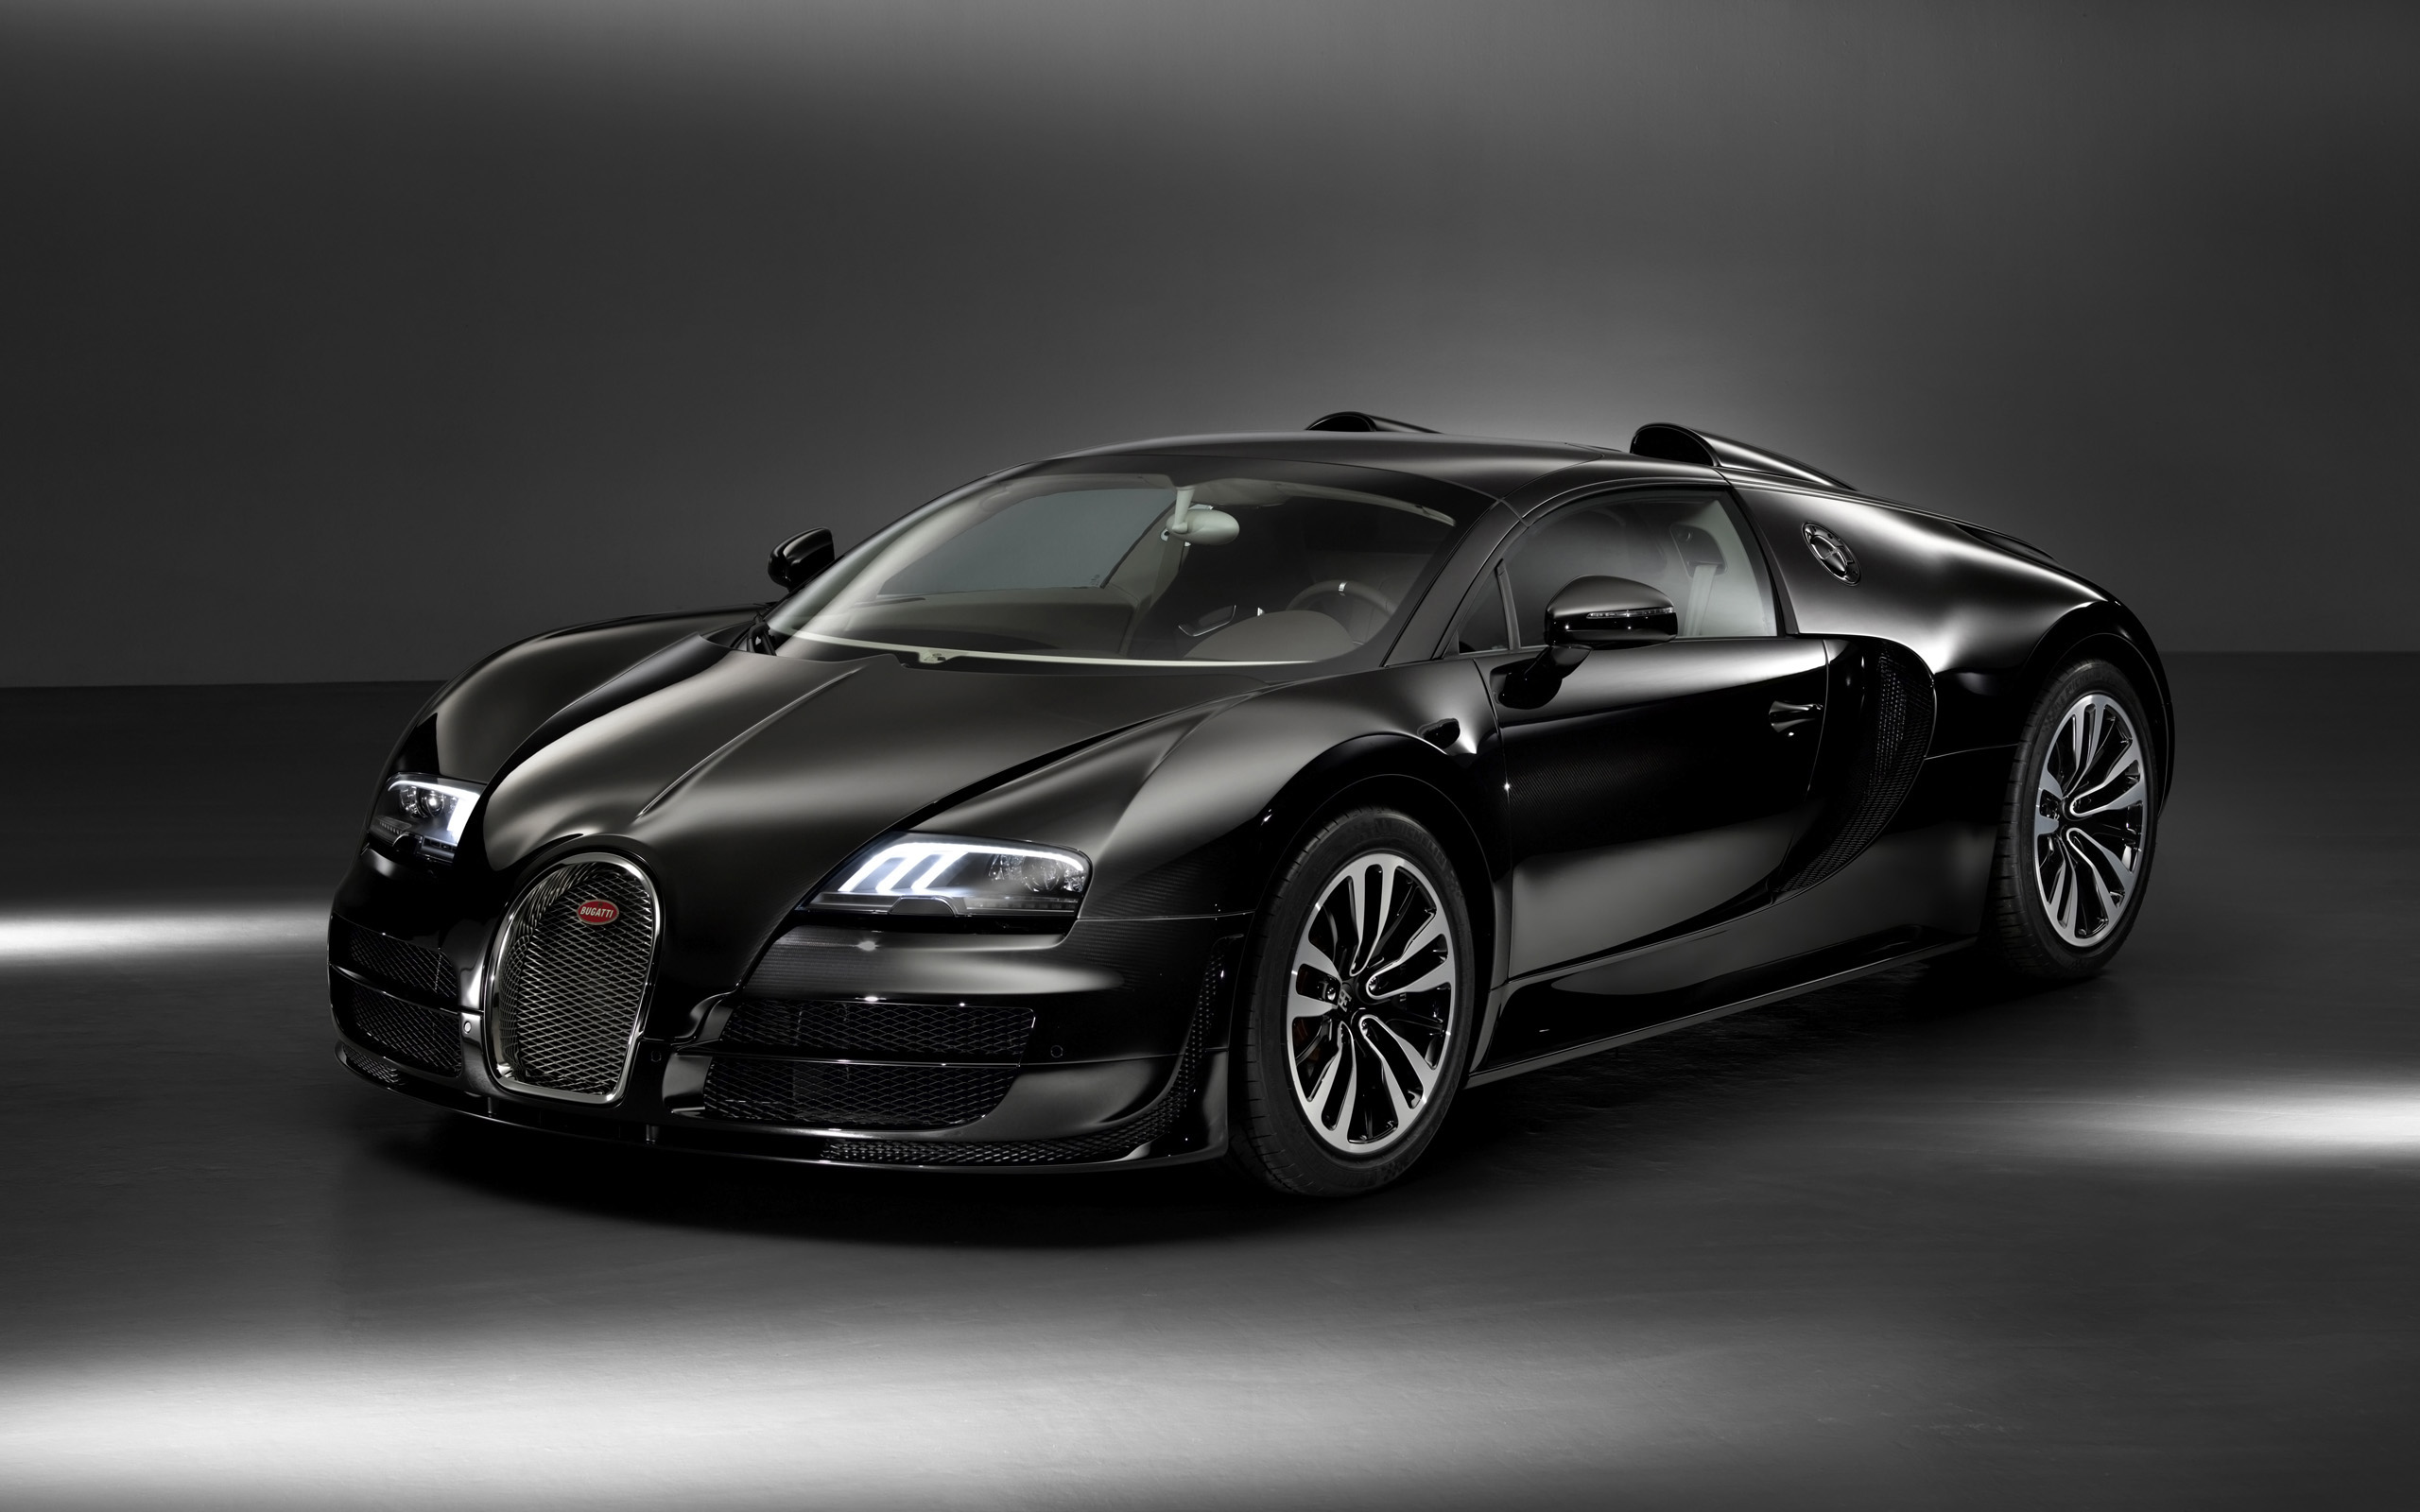 2013 bugatti veyron grand sport vitesse legend jean bugatti wallpaper hd car wallpapers id 3690. Black Bedroom Furniture Sets. Home Design Ideas